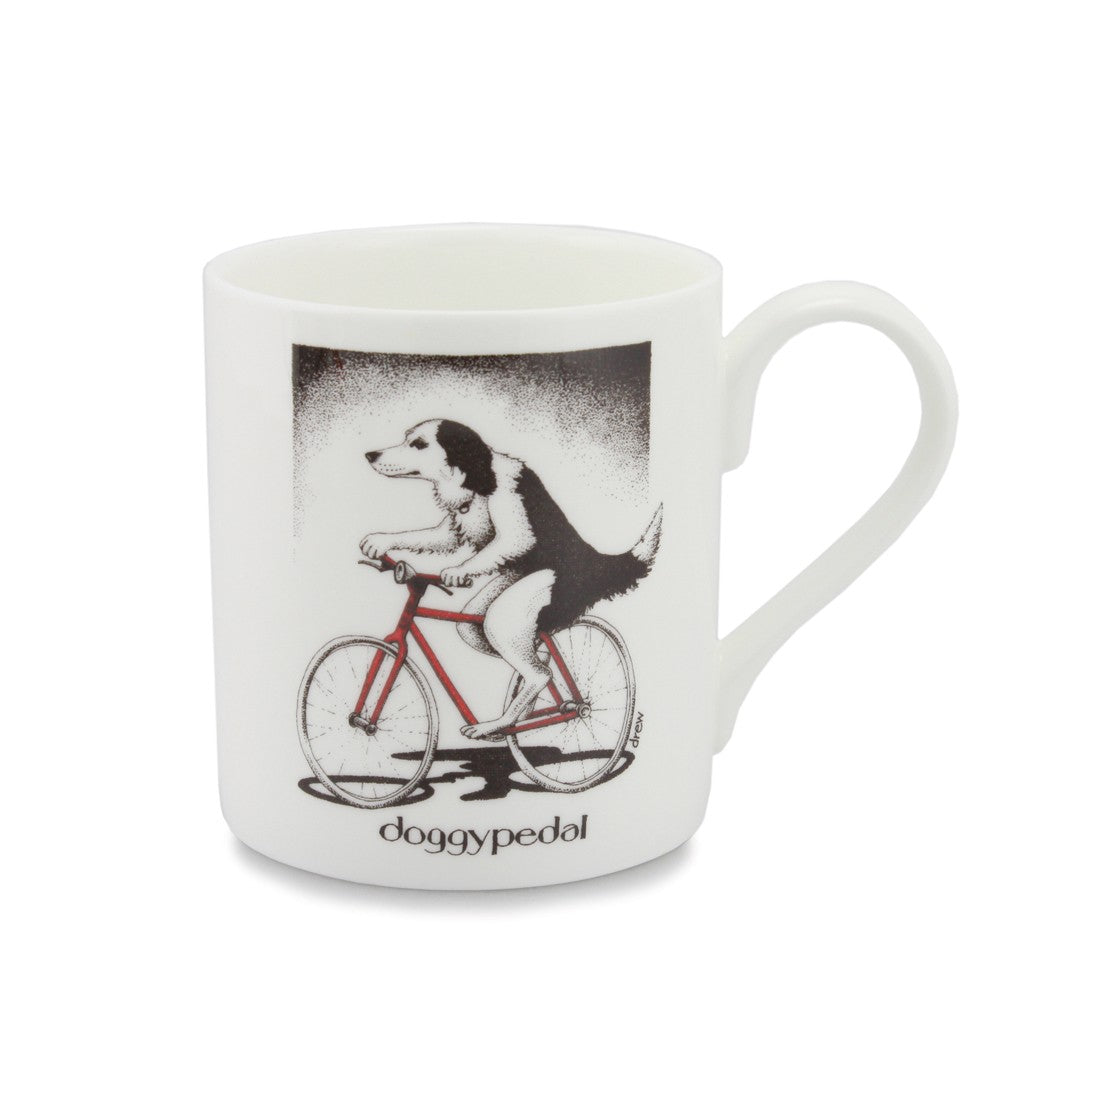 Simon Drew Doggy Pedal China Mug